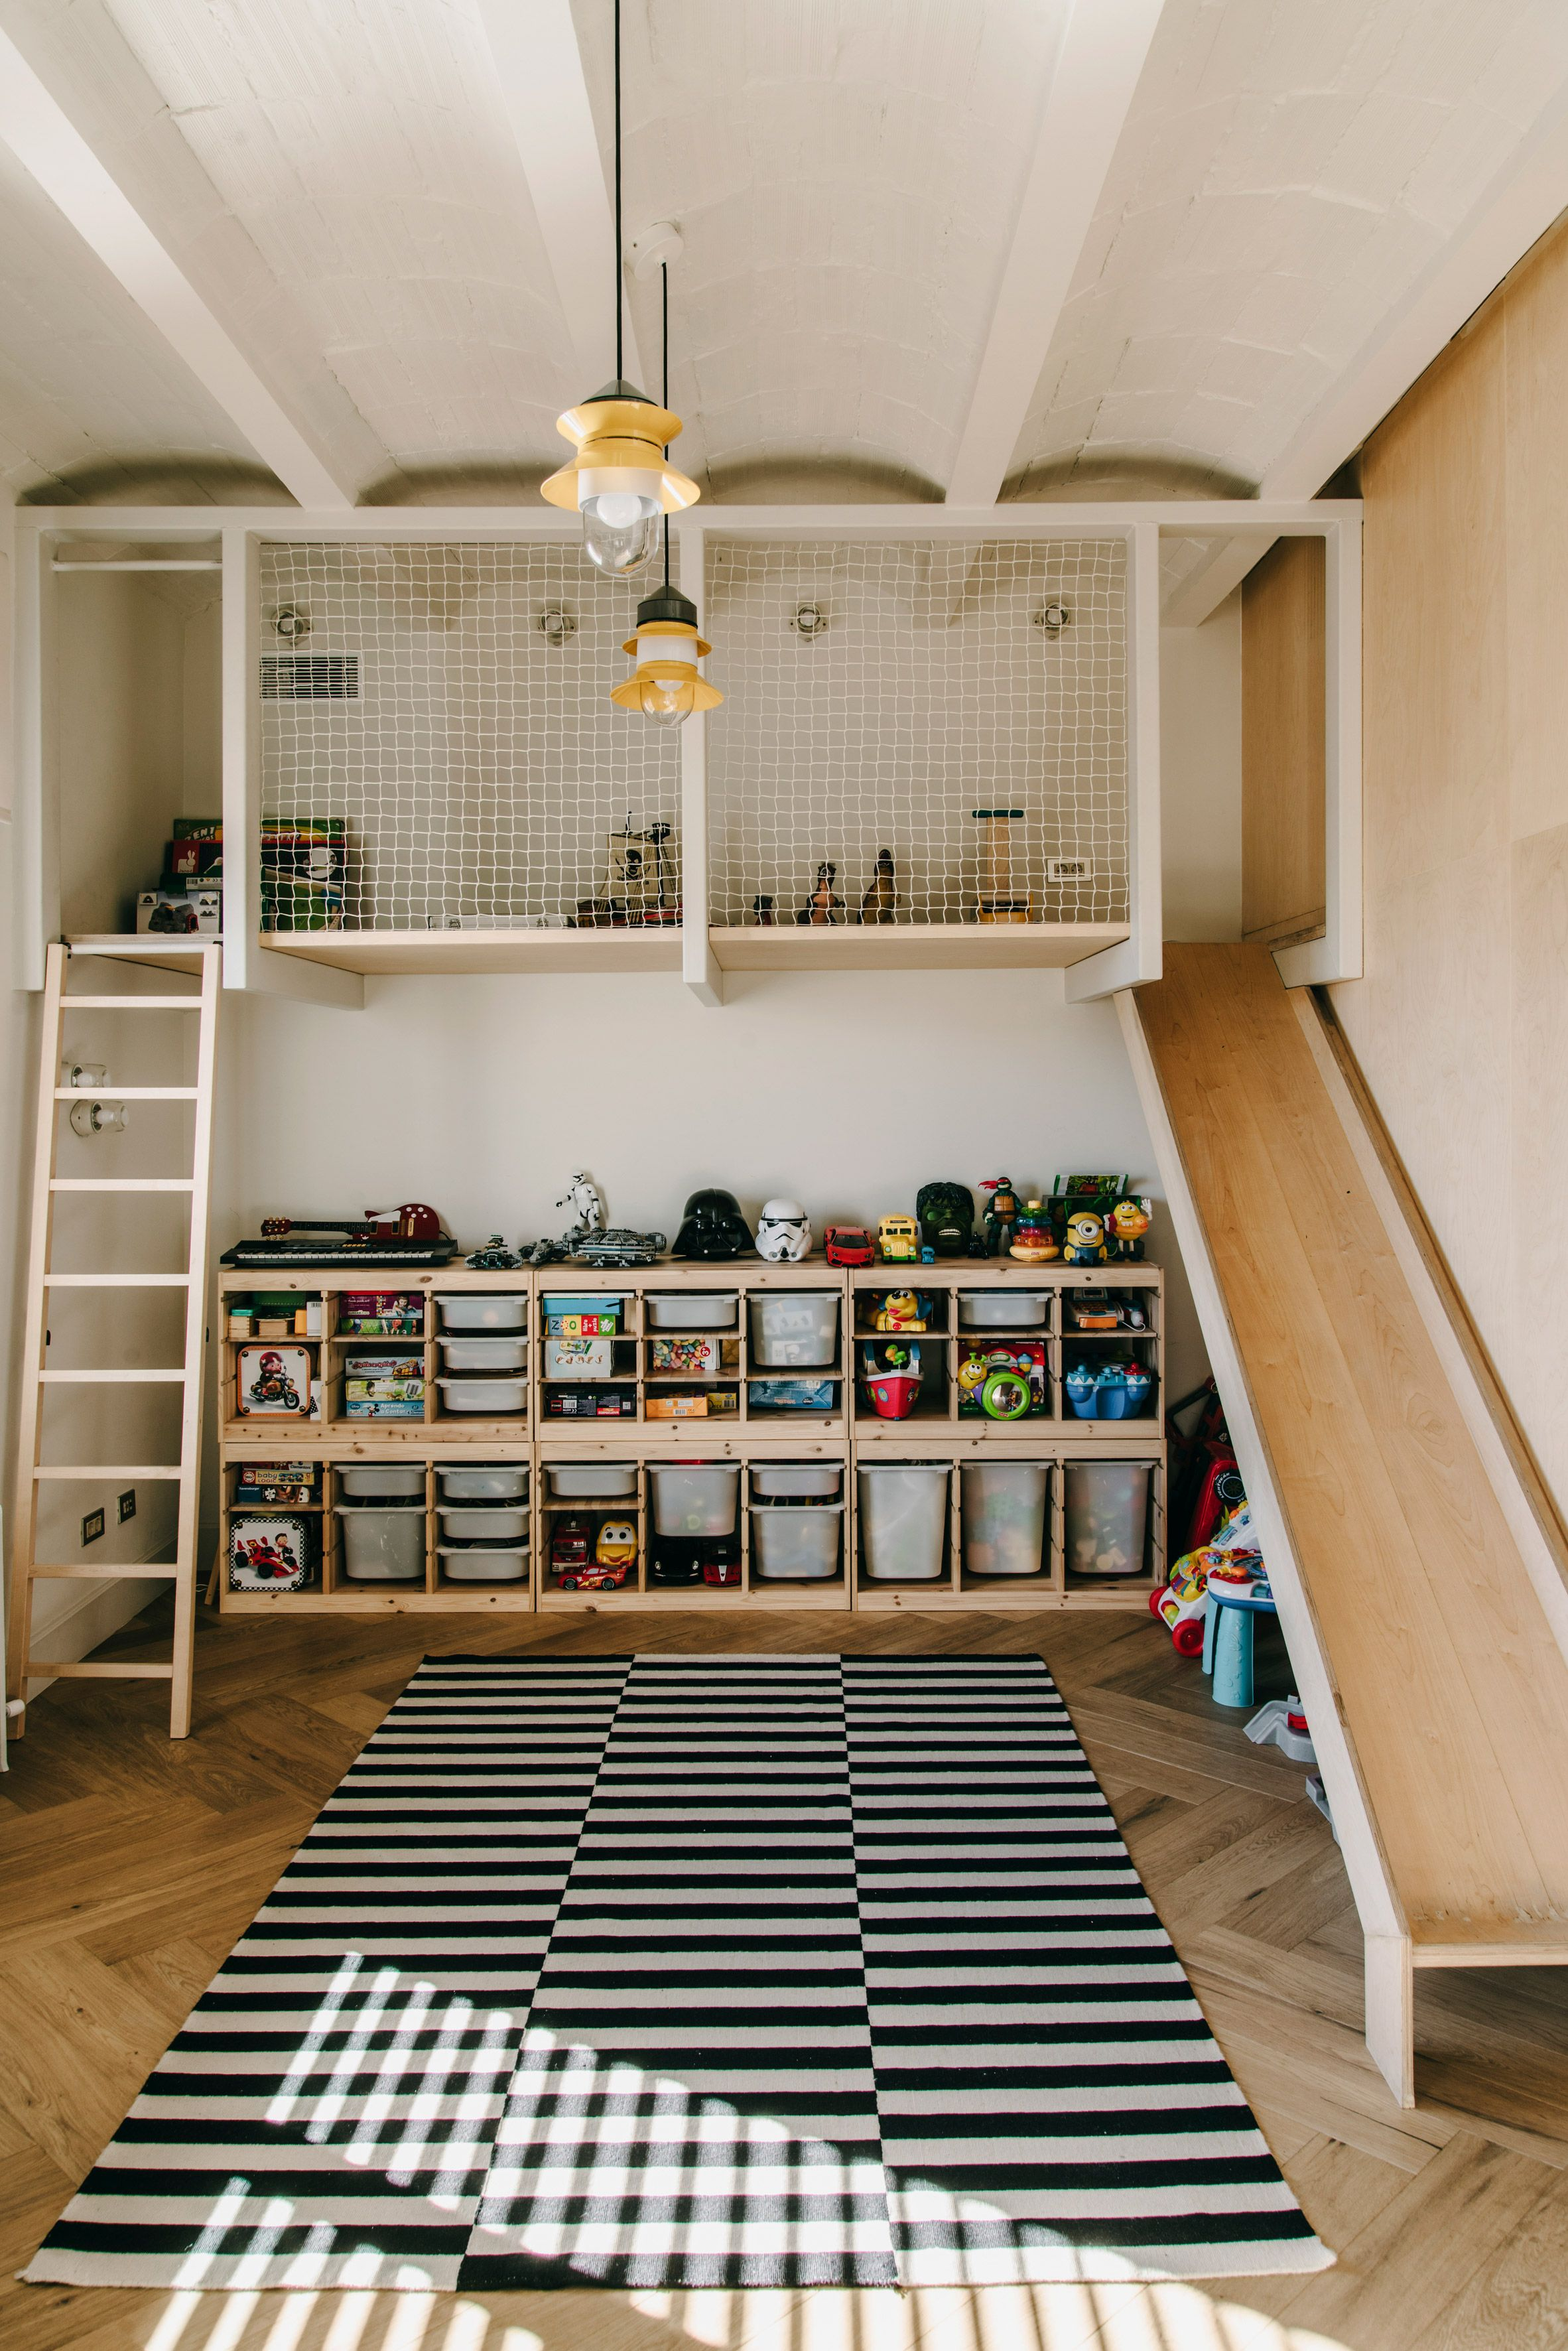 Cute Idea For Kidspace Love The Netting And Slide So Clever Sant Gervasi Apartment By Isabel Lopez Vil Diy Playroom Kids Room Design Barcelona Apartment